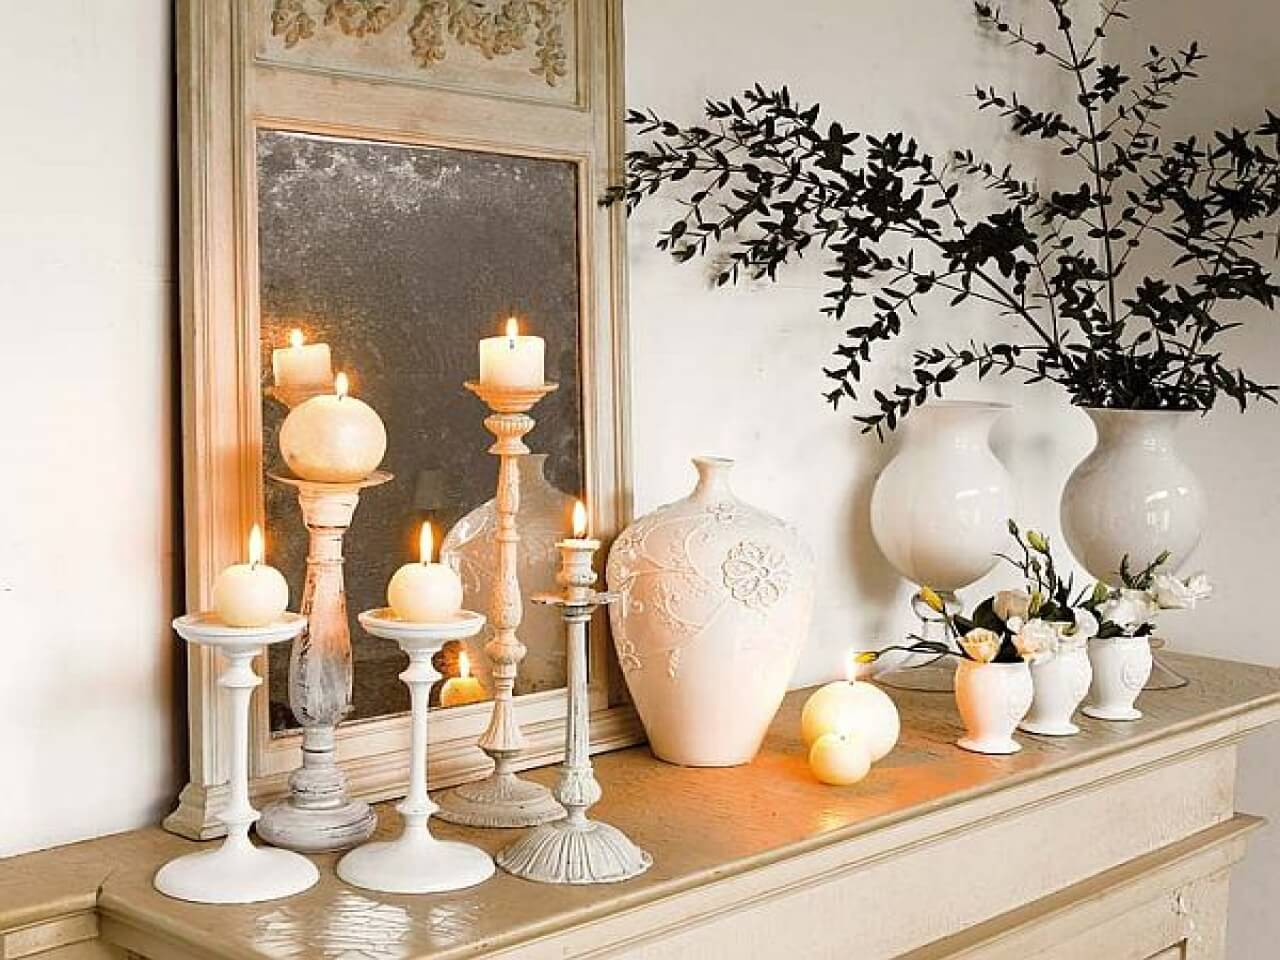 Simple Elegance with a Monochromatic Palette